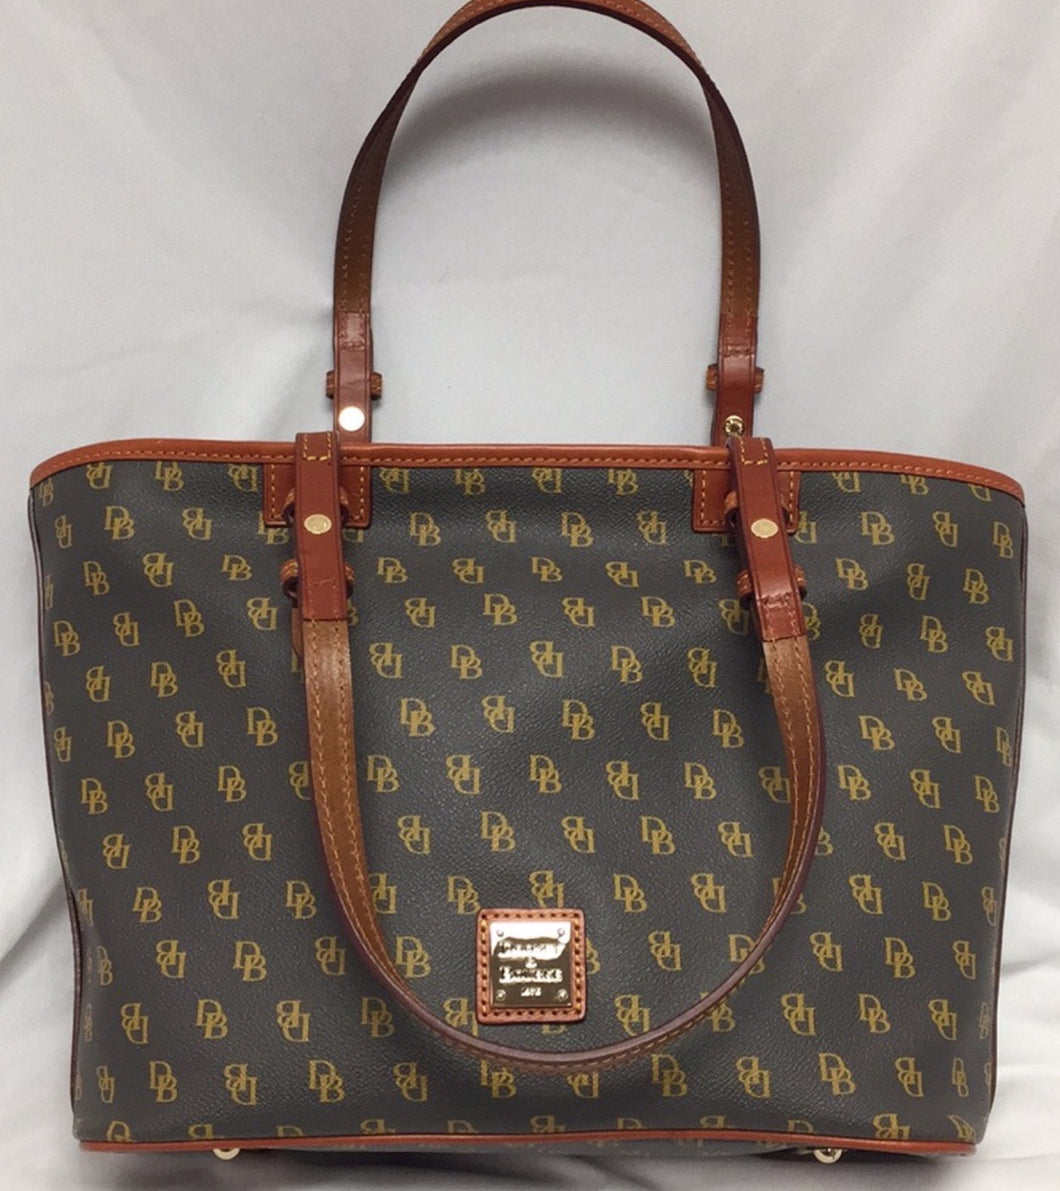 New with tags Dooney & Bourke Handbag